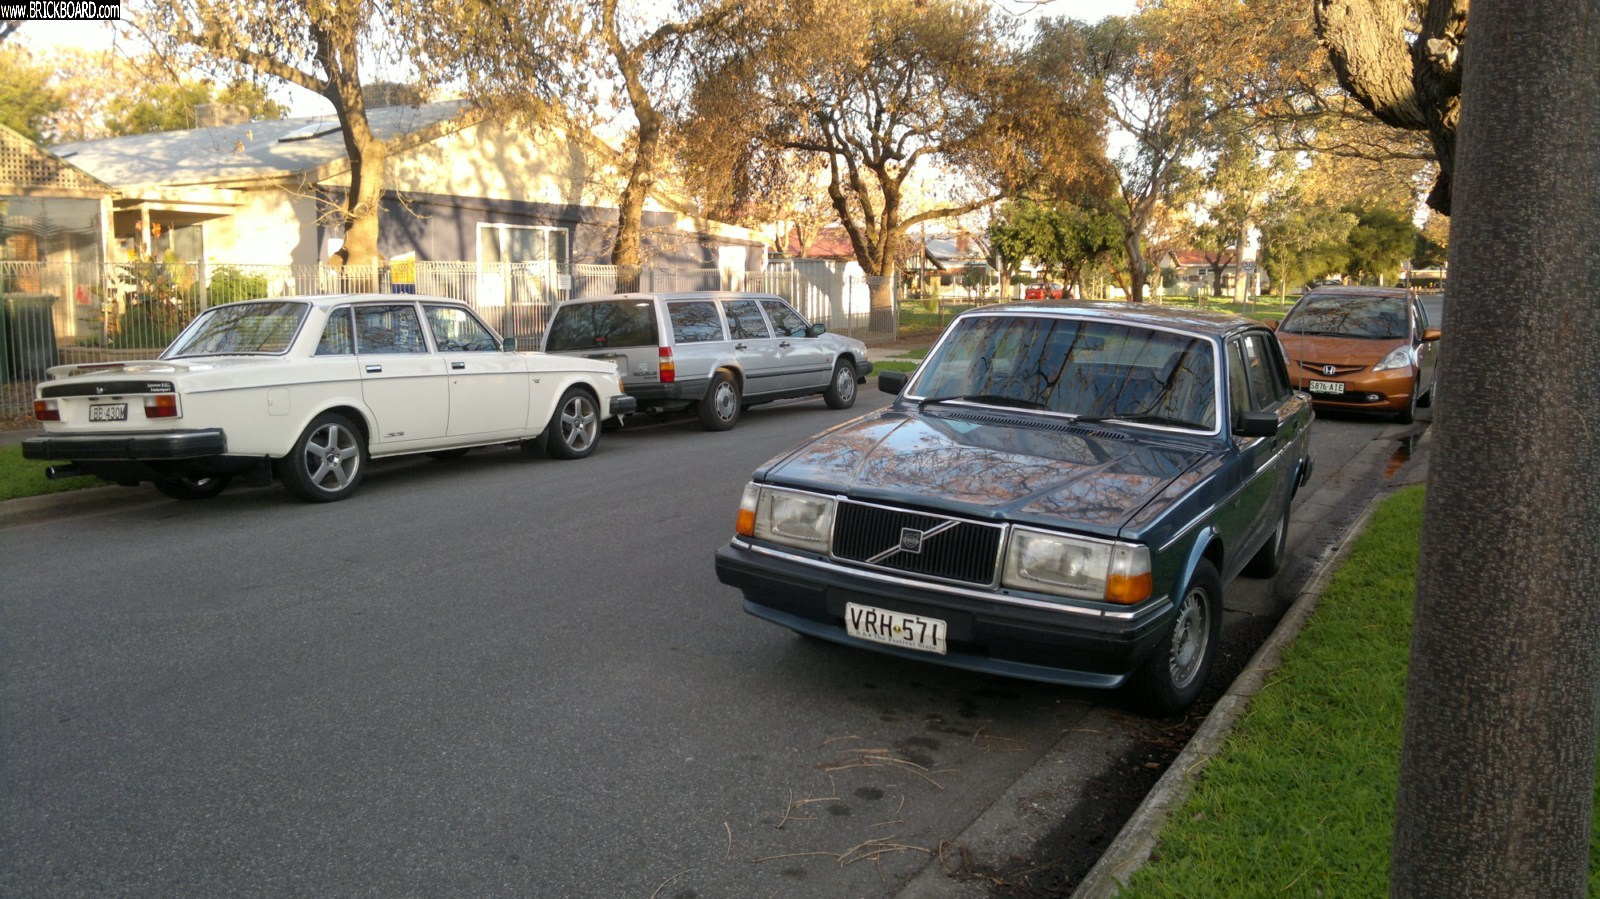 Volvo  -- All out on the street together.